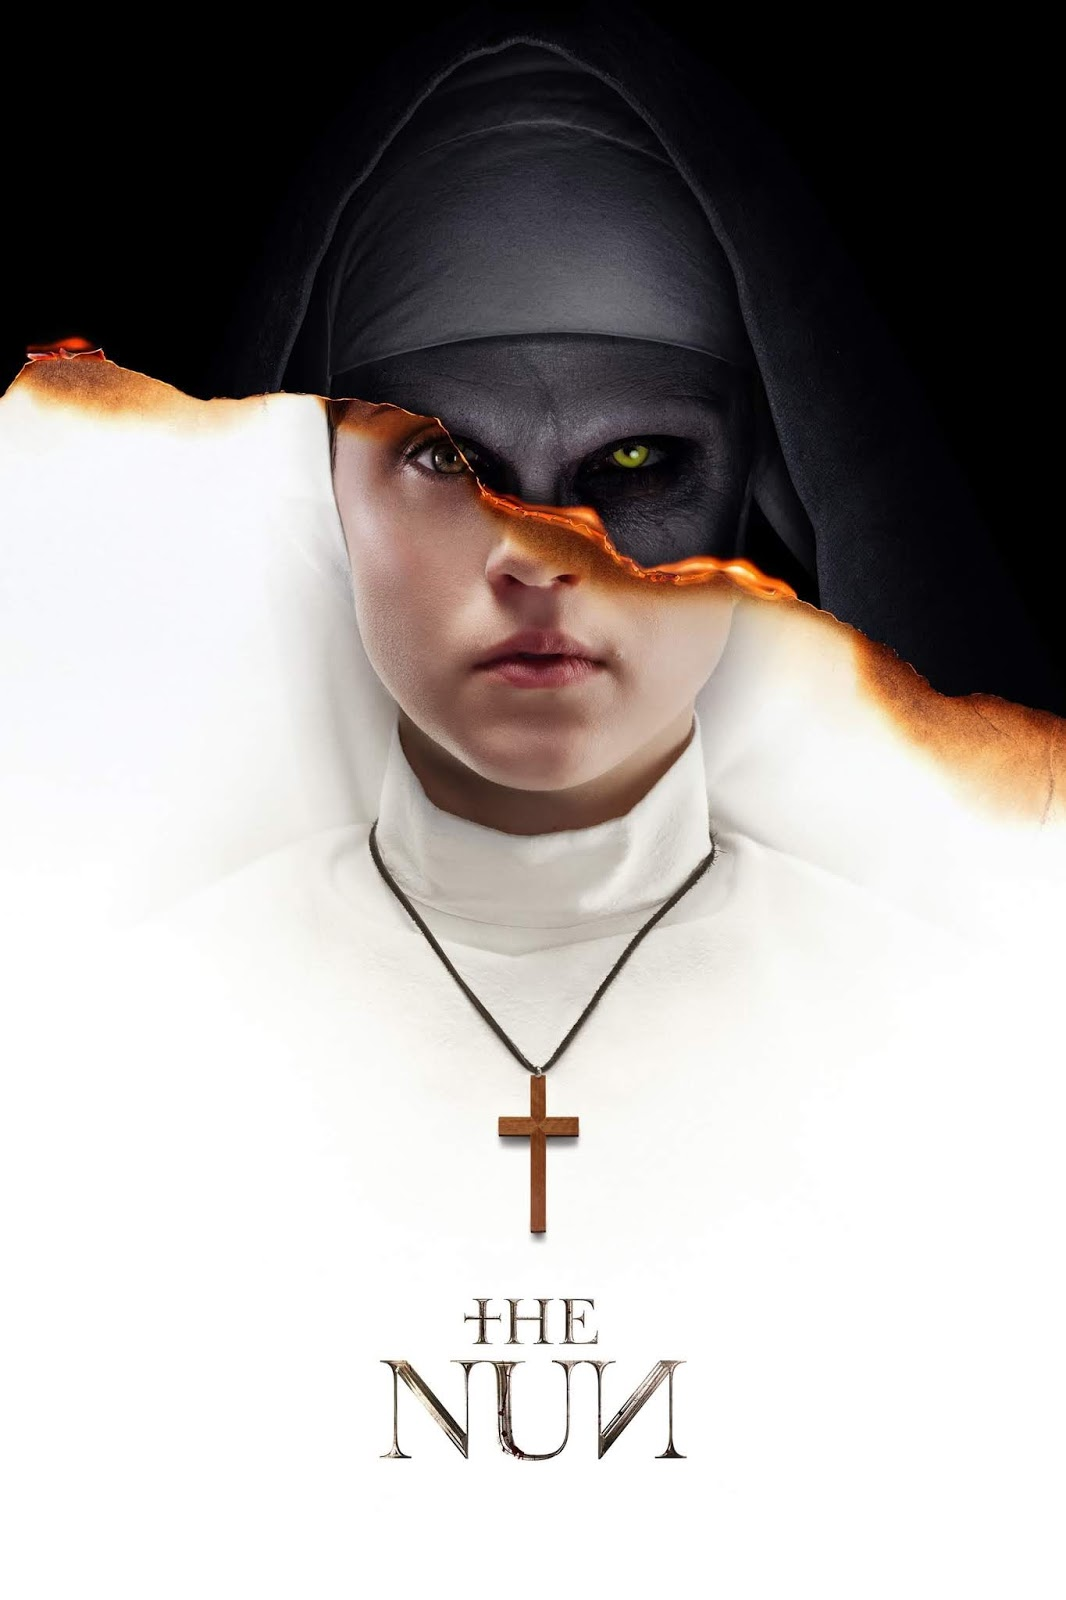 THE NUN (2018) TAMIL DUBBED HD